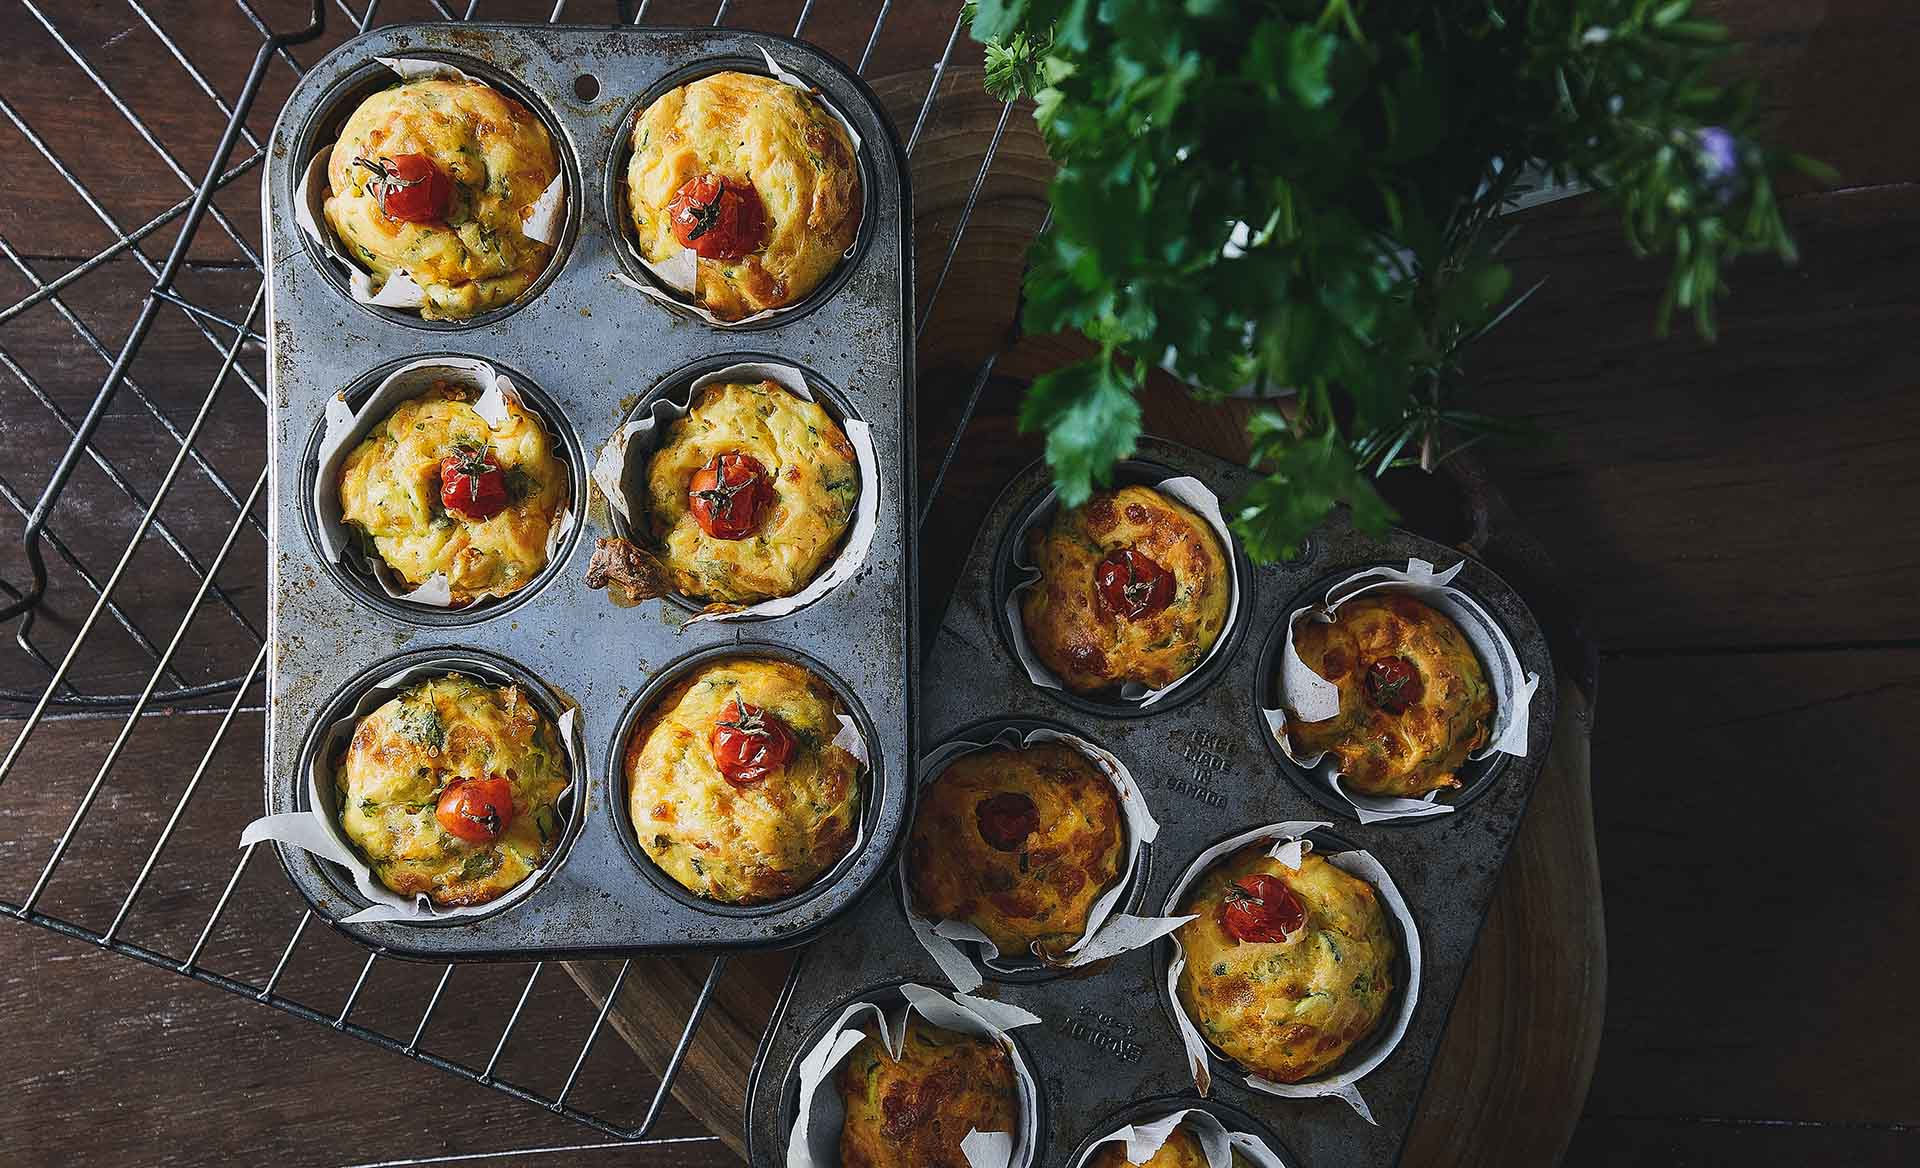 Summer_Seasonal_Savoury_Muffins_KGF_Medibank (121 of 82)